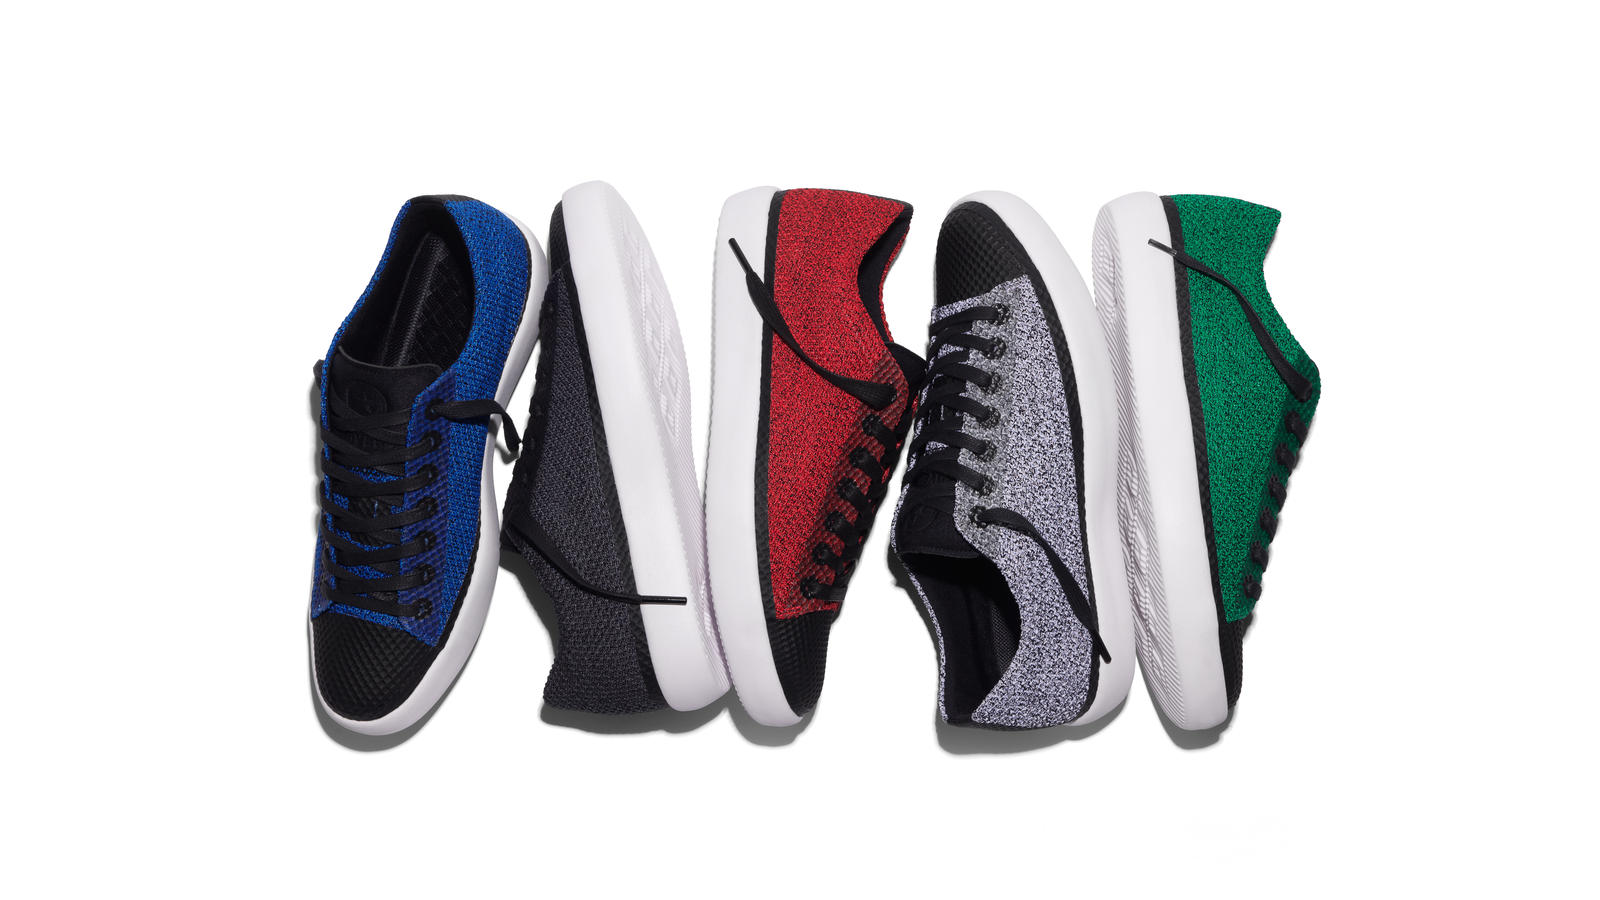 2a4f9f66dc3480 CONVERSE UNVEILS THE ALL STAR MODERN SNEAKER INSPIRED BY THE 1920 ...